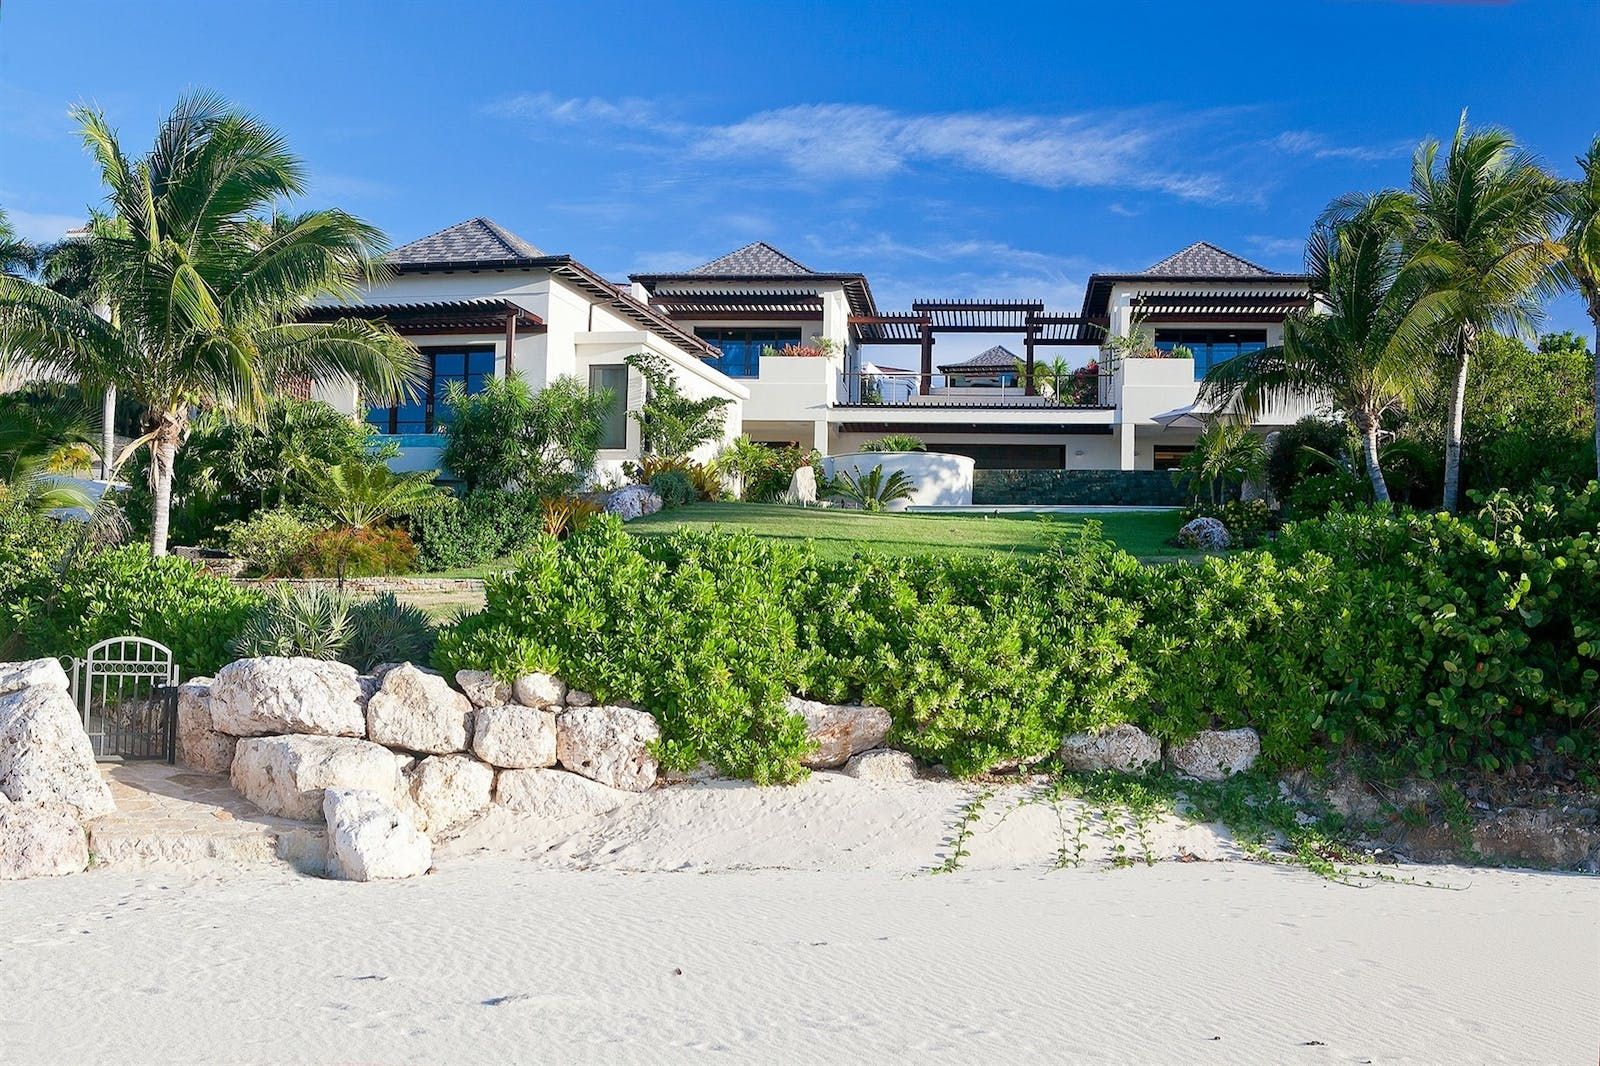 exterior view from beach - nevaeh villa anguilla